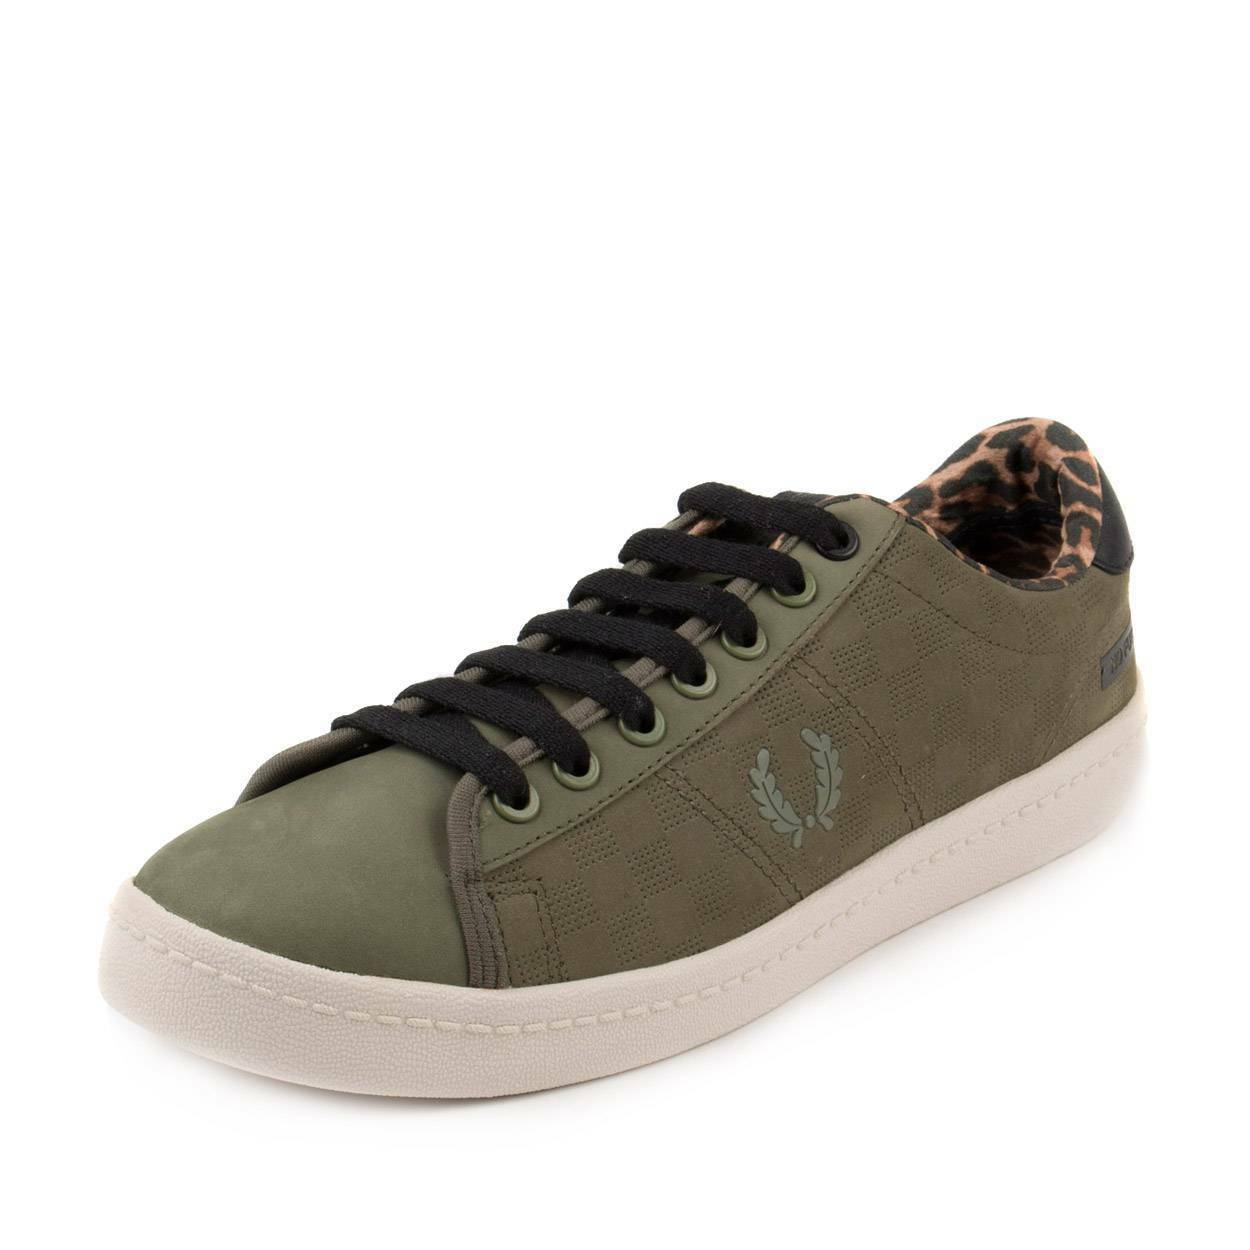 Fred Perry Mens Bodega ReIssue Tennis shoes 2 Olive Green Black-Leopard SB7060